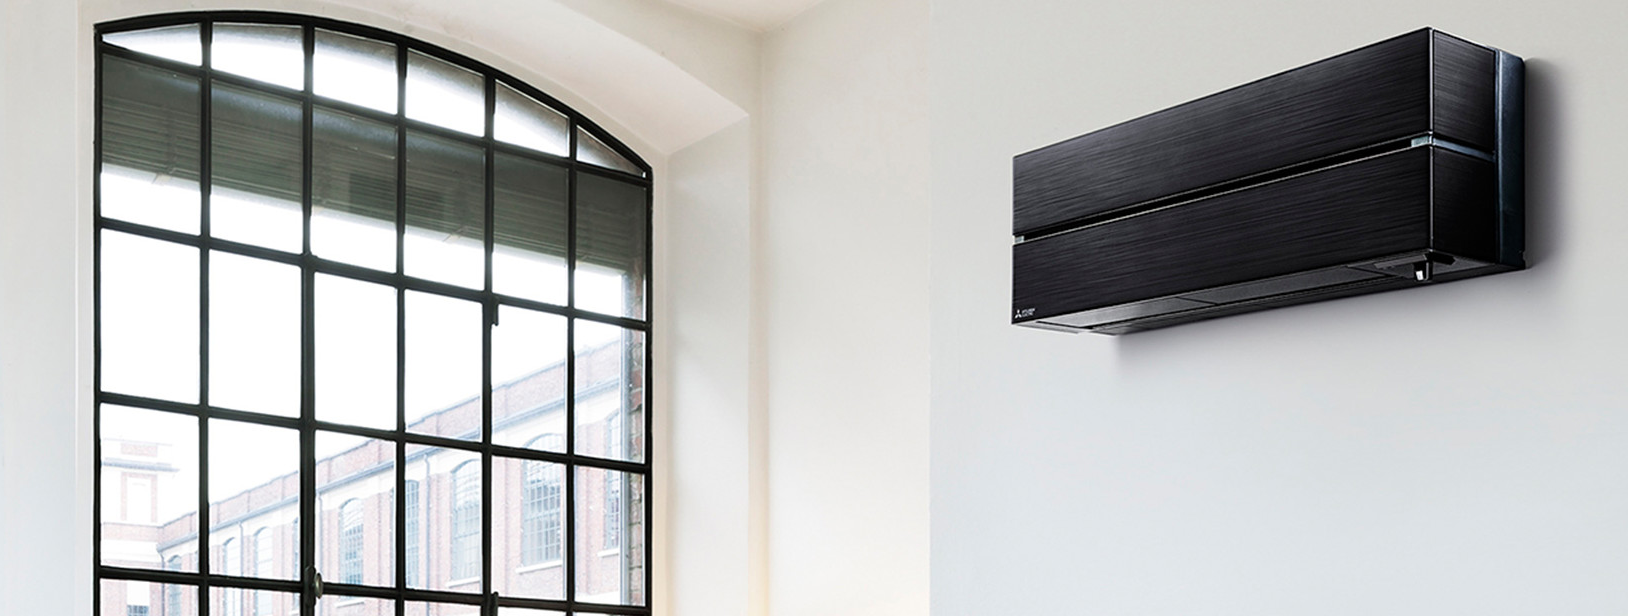 Mitsubishi Electric MSZ-LN black wall mounted split system installation example